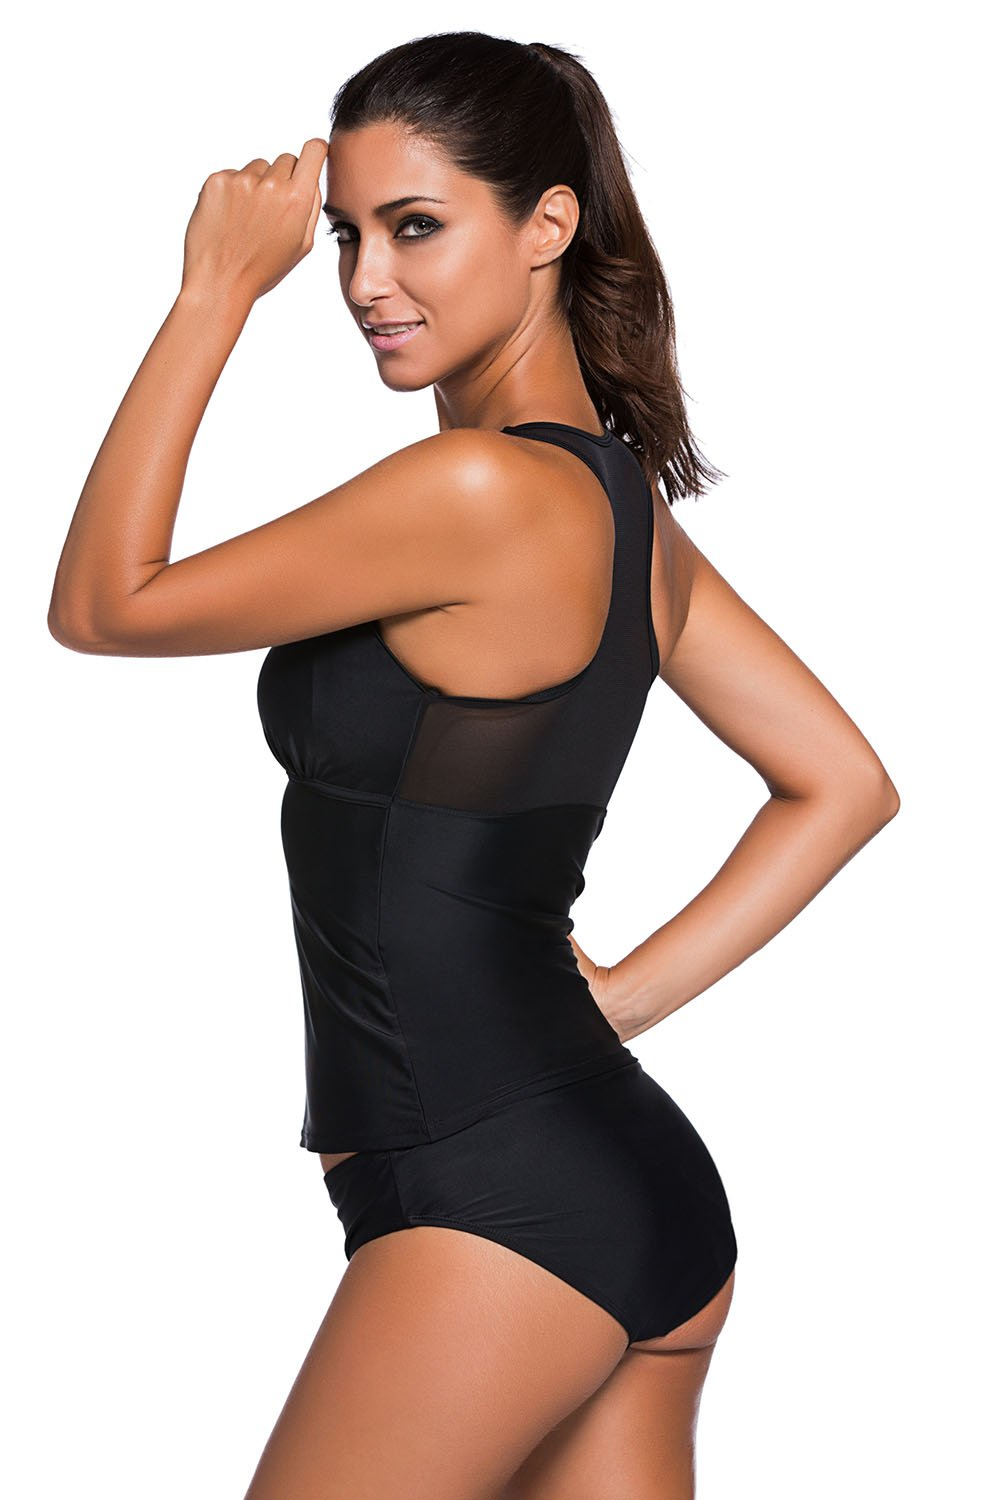 d934572bfe053 Mesh insert tankini swim top for sporty and fashionable look. Matching swim  bottom with full-coverage rear for comfortable fit. Stylish two-piece  swimsuit ...